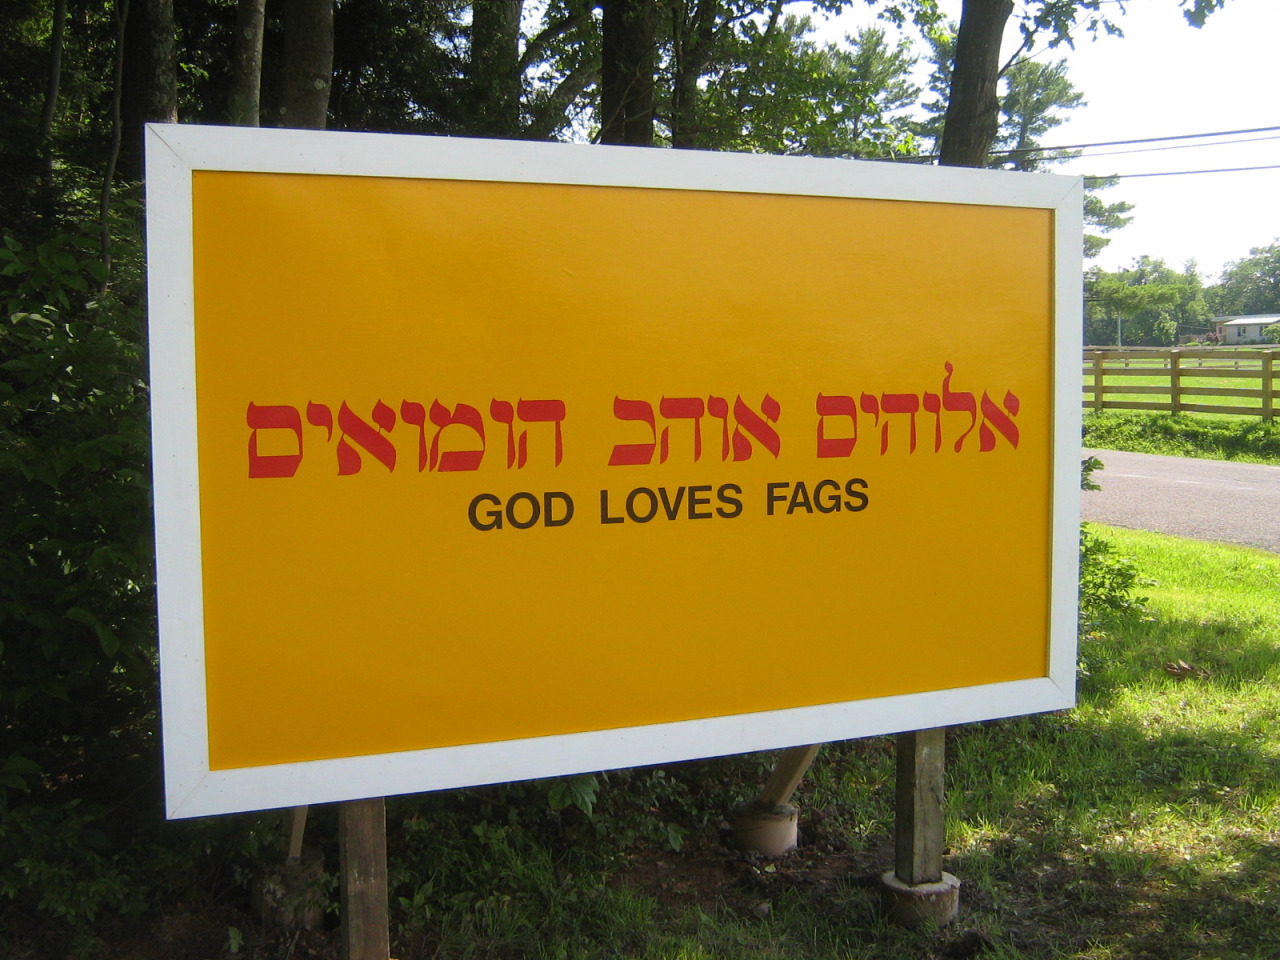 Mike Osterhout, GOD LOVES FAGS, 2011. Courtesy of the artist.